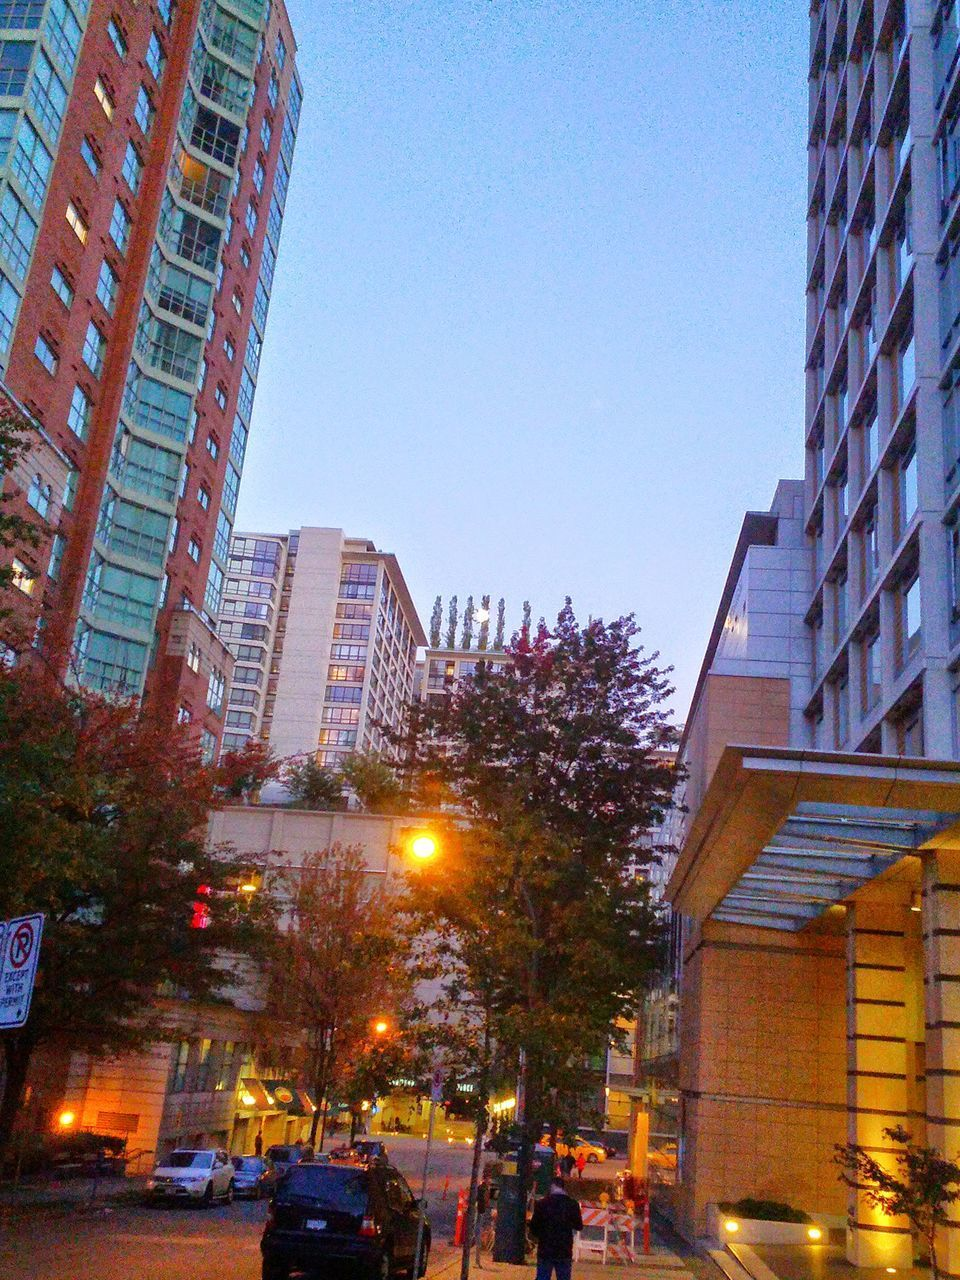 city, architecture, building exterior, modern, skyscraper, illuminated, clear sky, cityscape, no people, sky, tree, outdoors